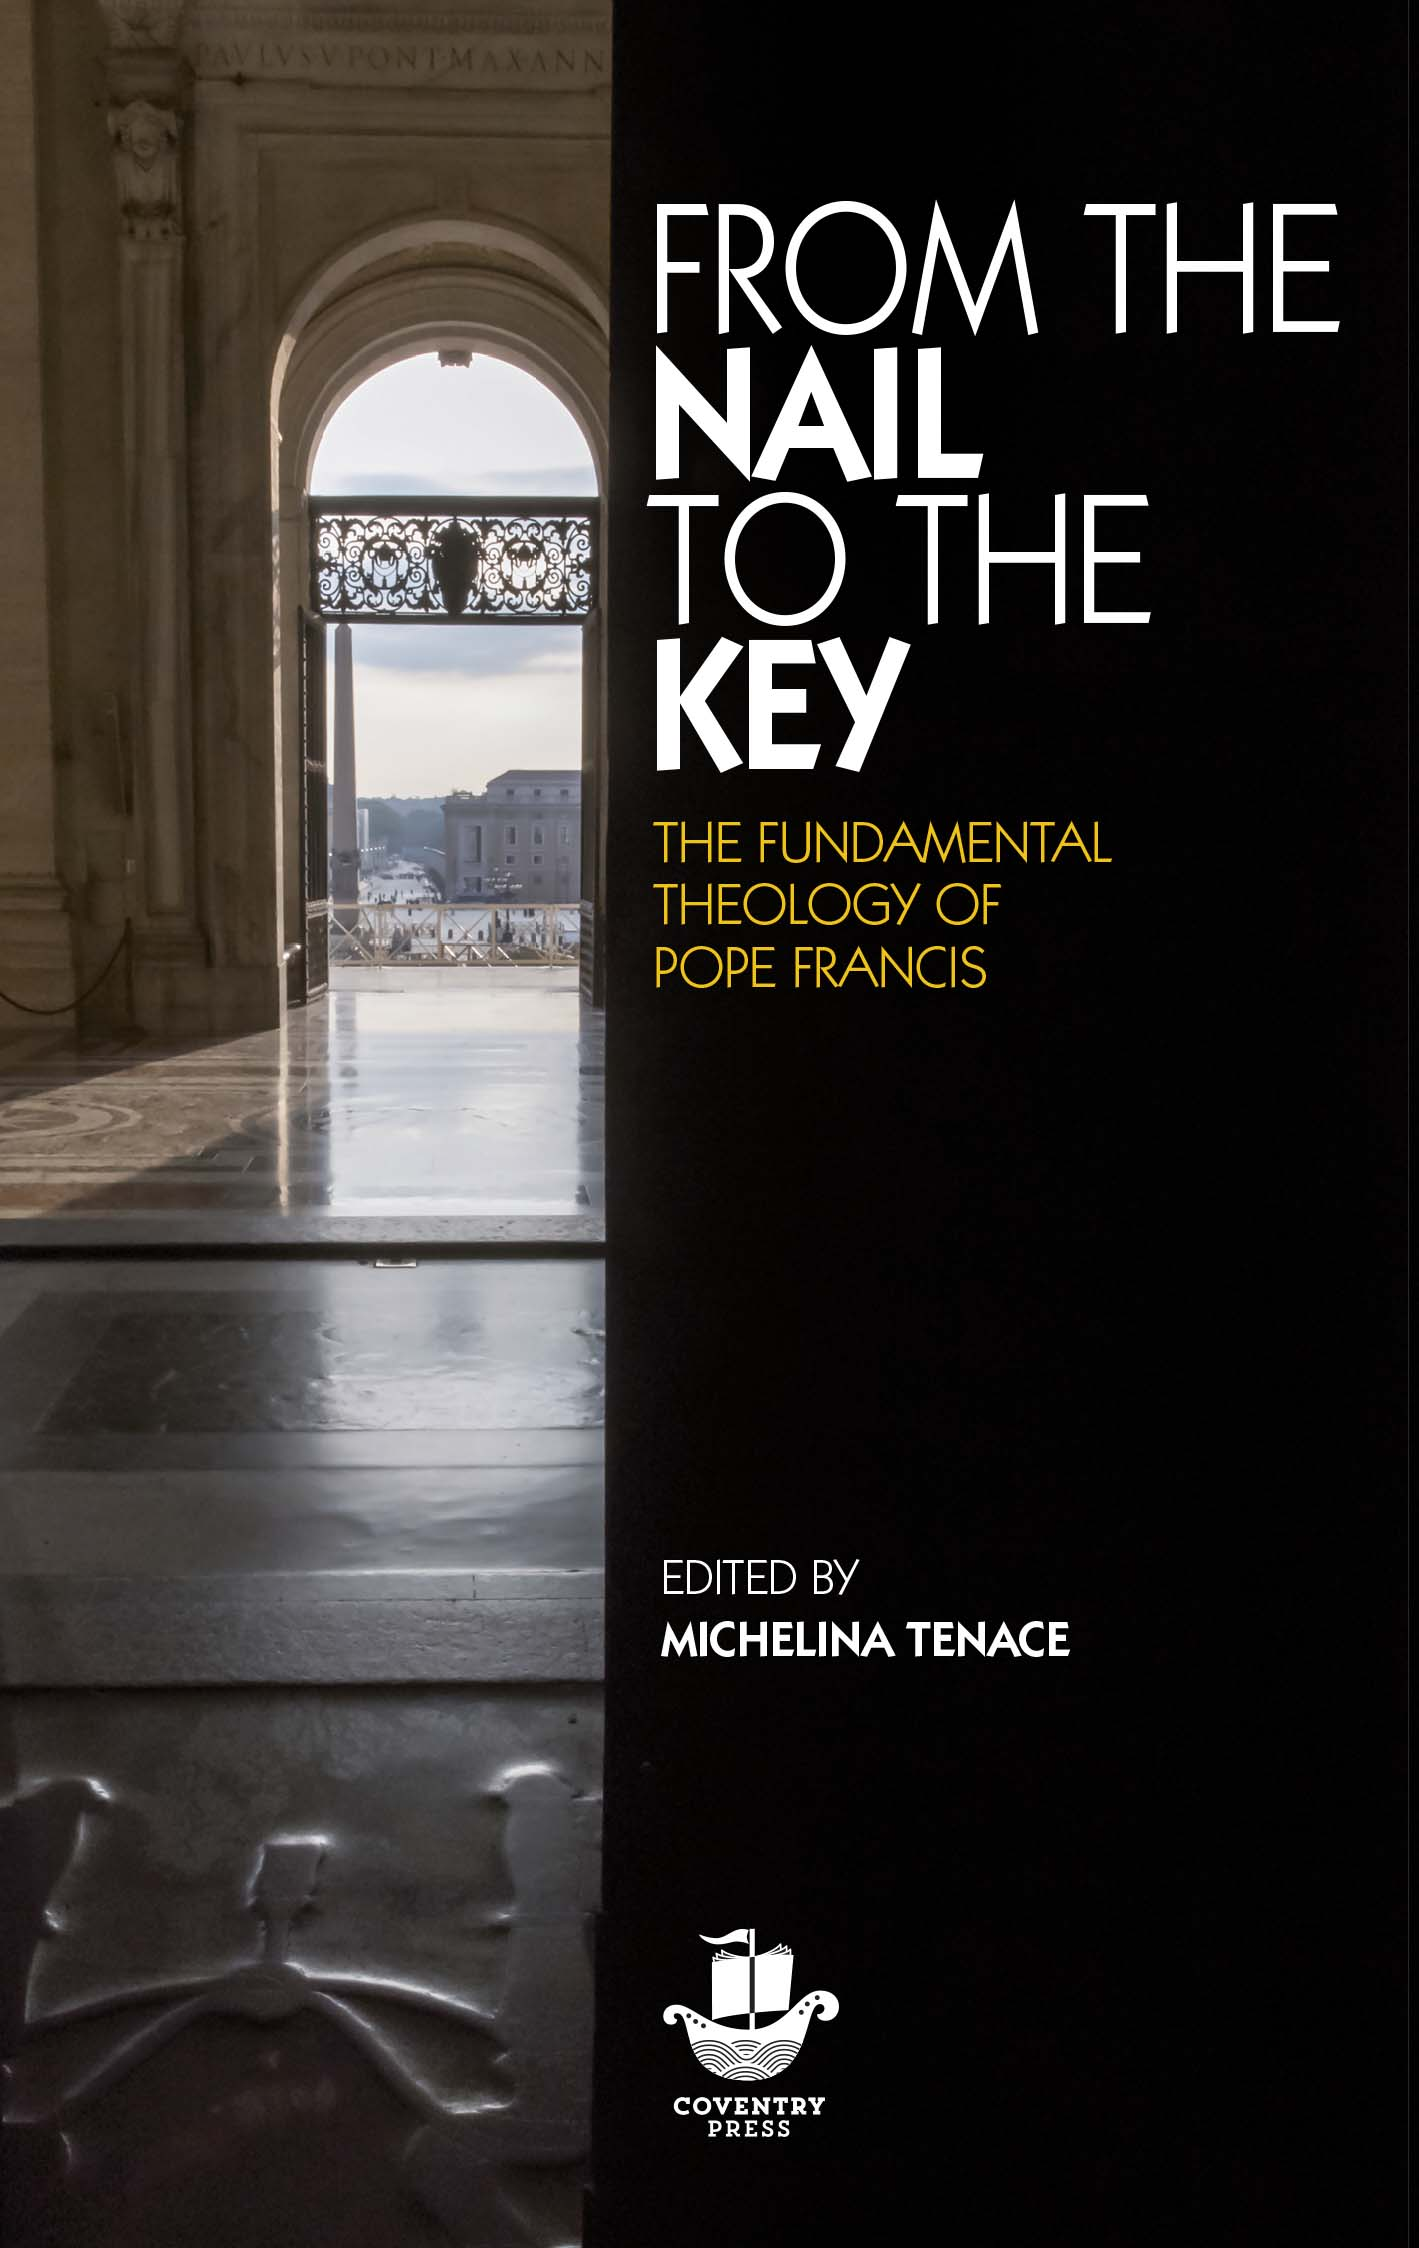 From the Nail to the Key  The Fundamental Theology of Pope Francis / Edited by Michelina Tenace